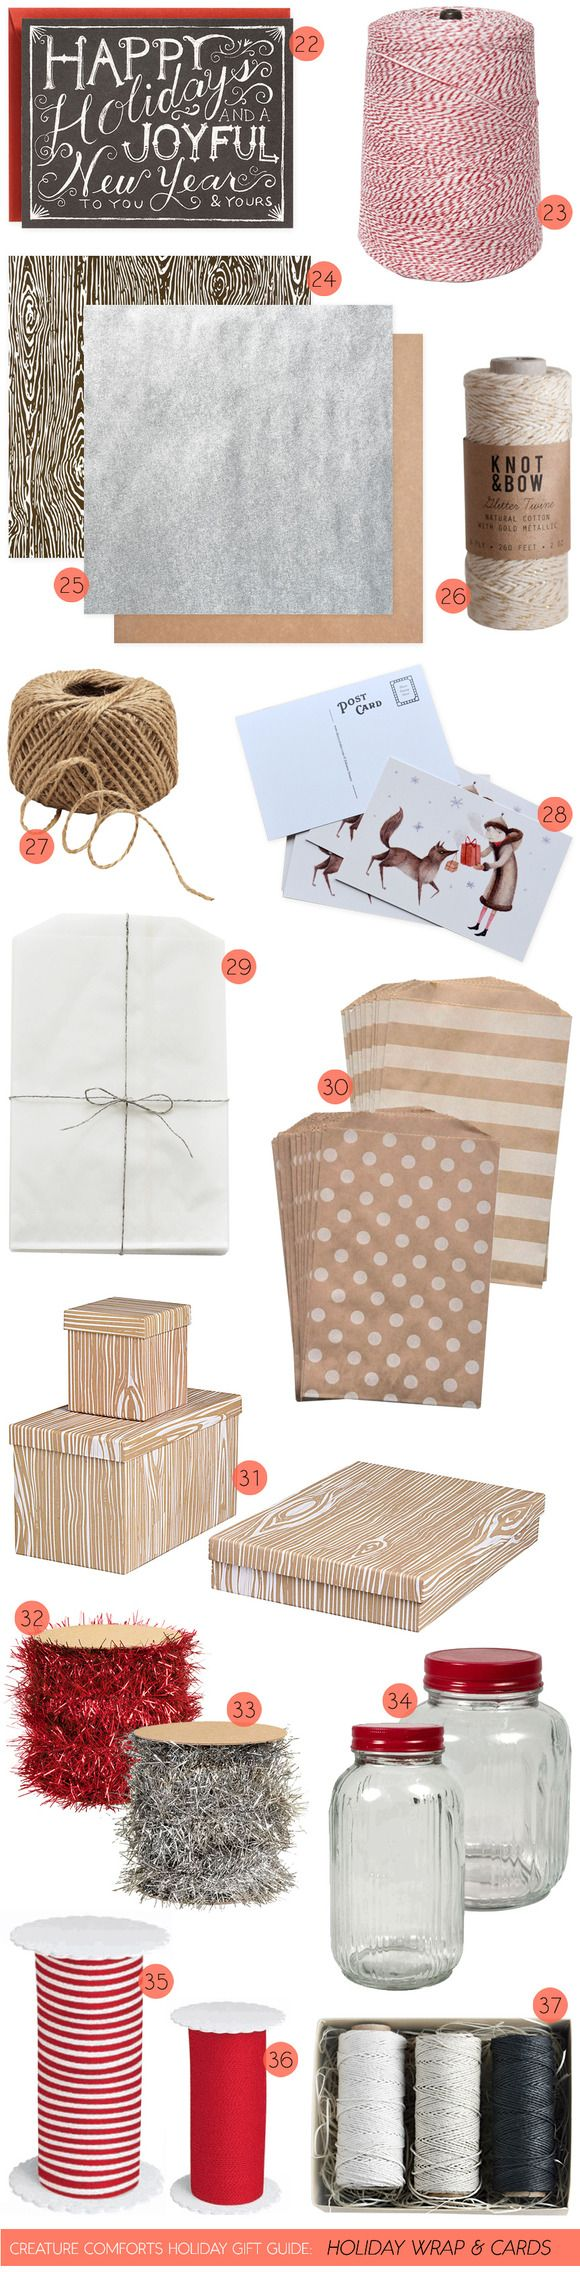 Creature Comforts Holiday Gift Guide: Wrap +Cards - Home - Creature Comforts - daily inspiration, style, diy projects + freebies